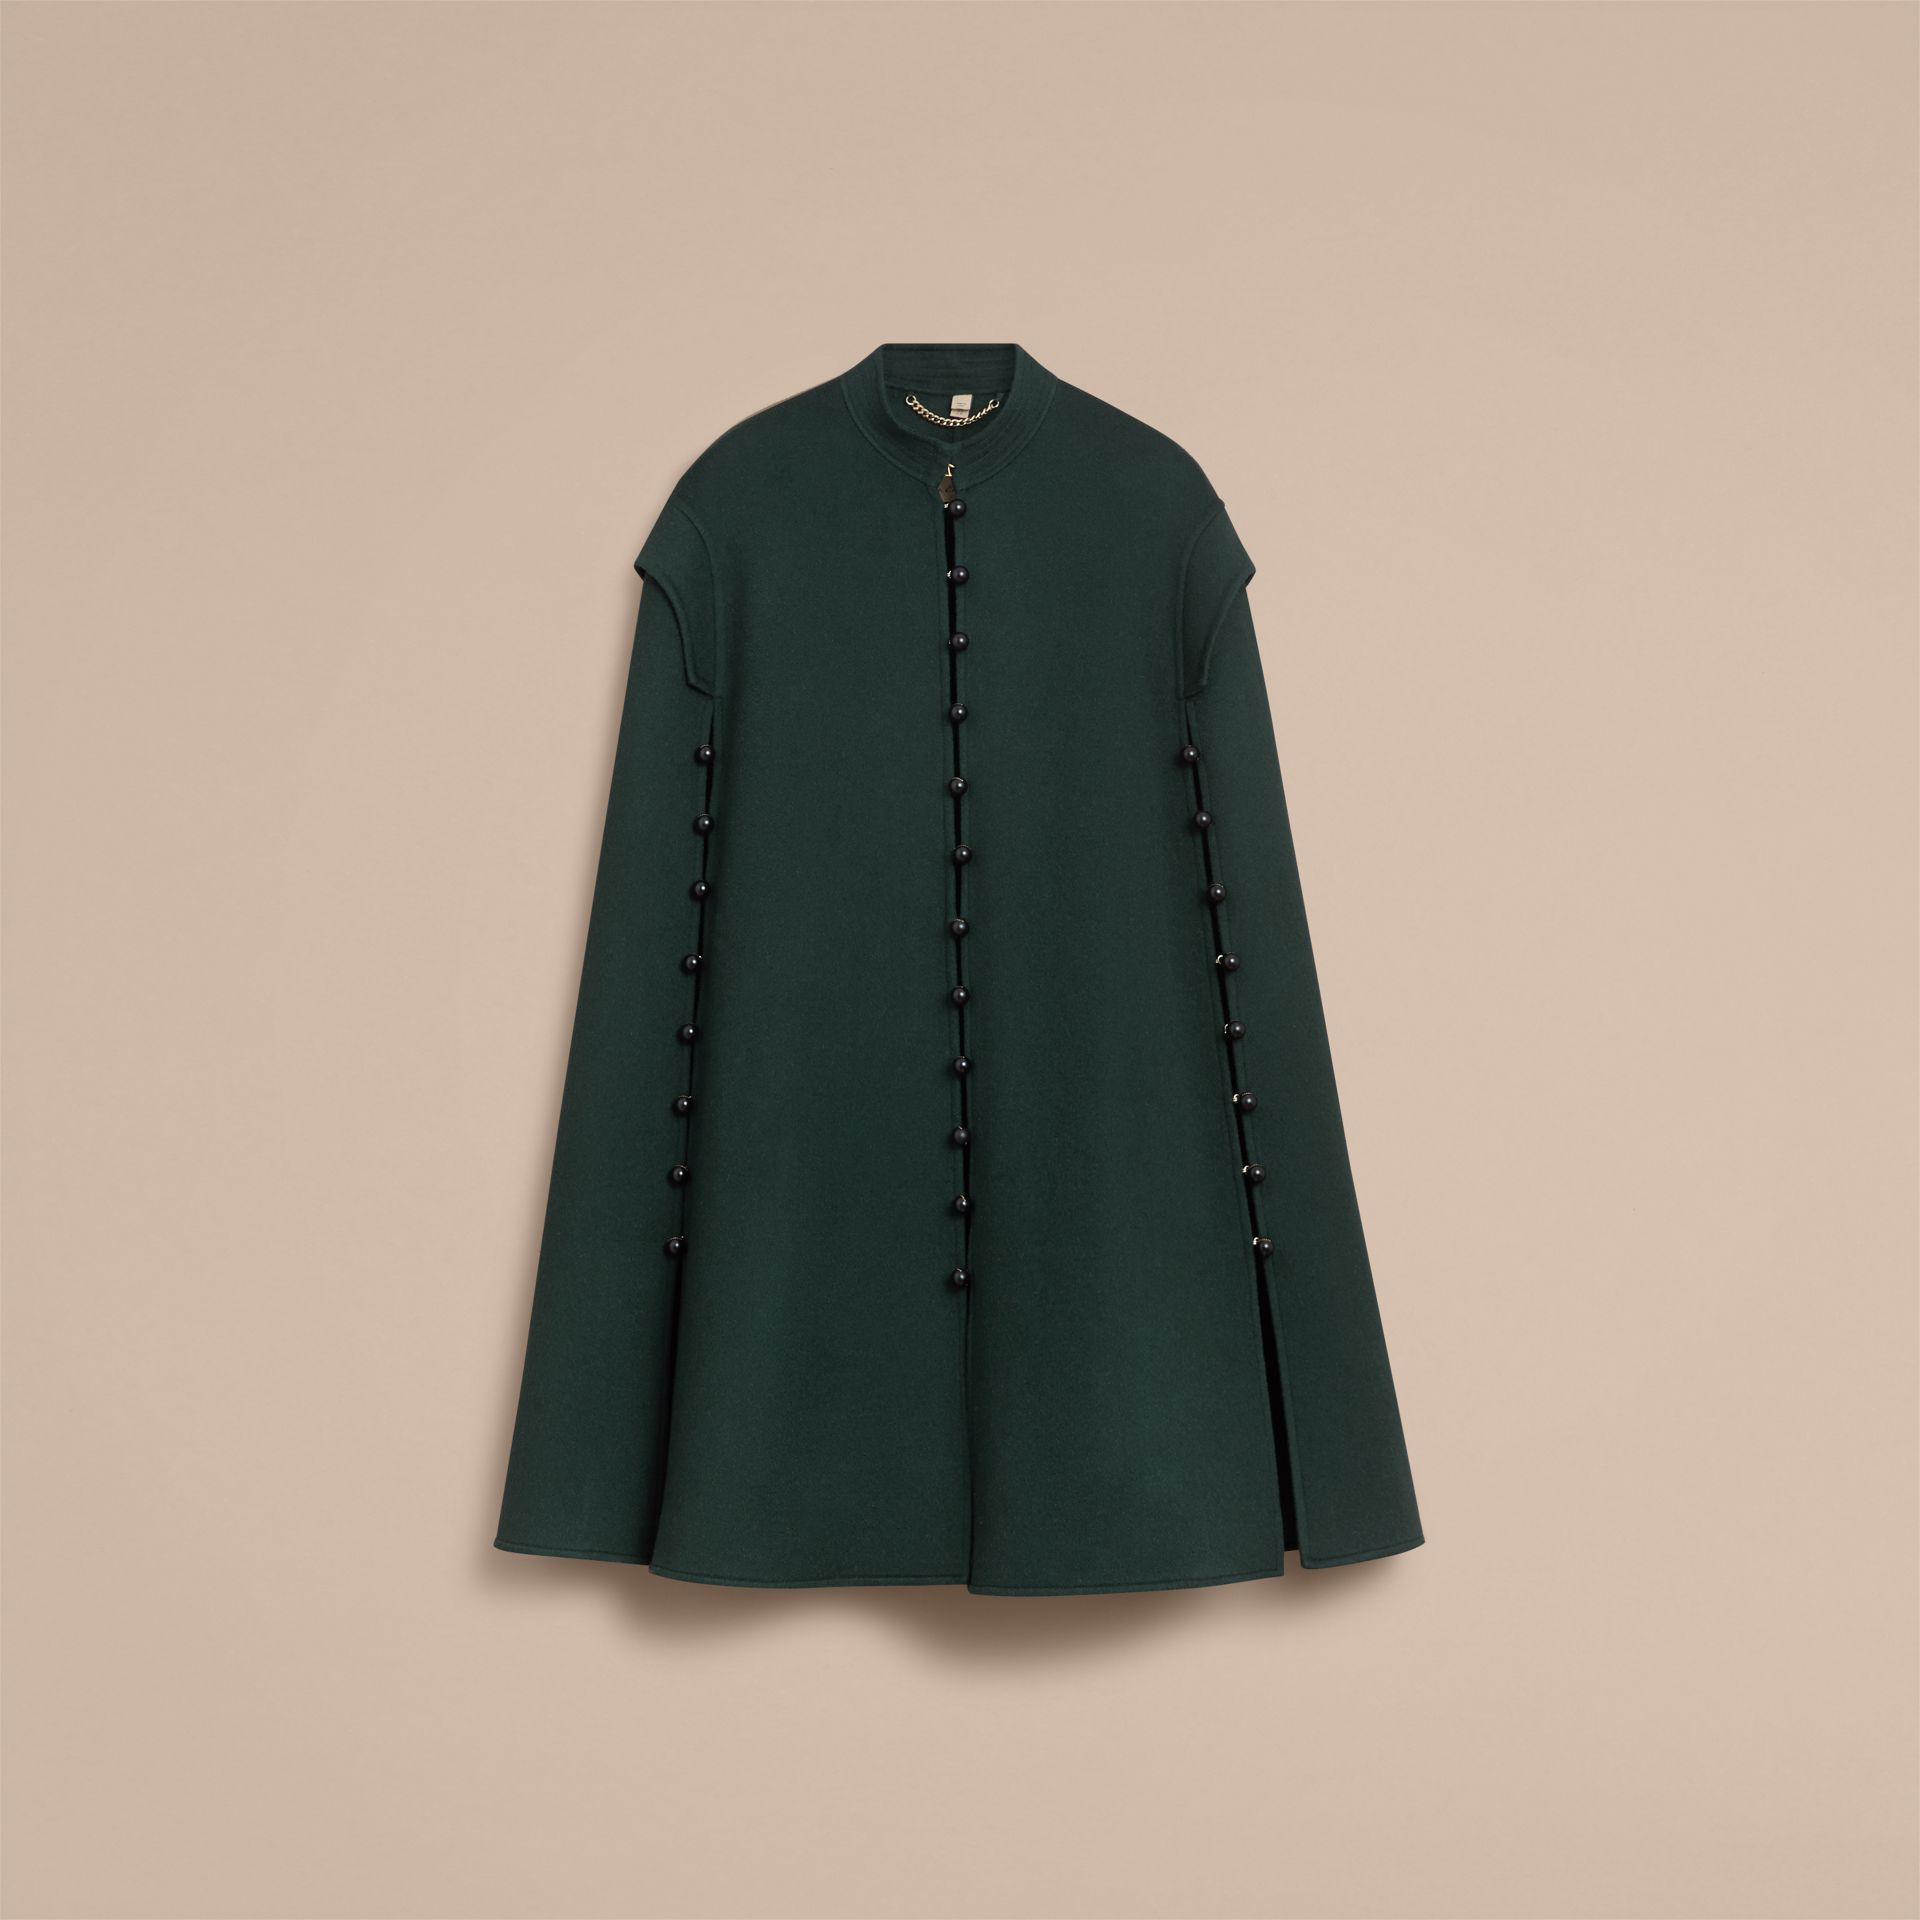 Domed Button Camel Hair Wool Cape - Women | Burberry Australia - gallery image 4